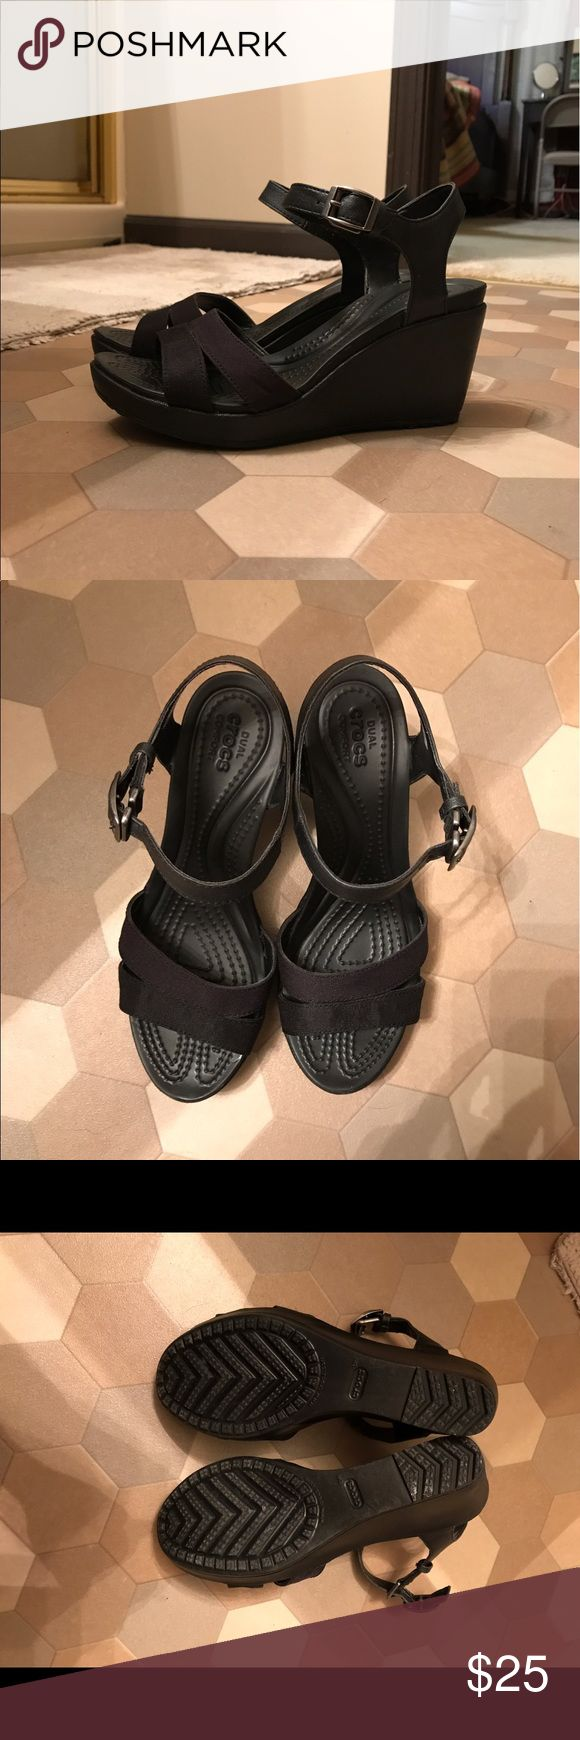 Women's Crocs Leigh II Wedge Sandals Women's Crocs Leigh II Wedge Sandals Black Size 7 in excellent condition, super comfy, only worn once. CROCS Shoes Wedges